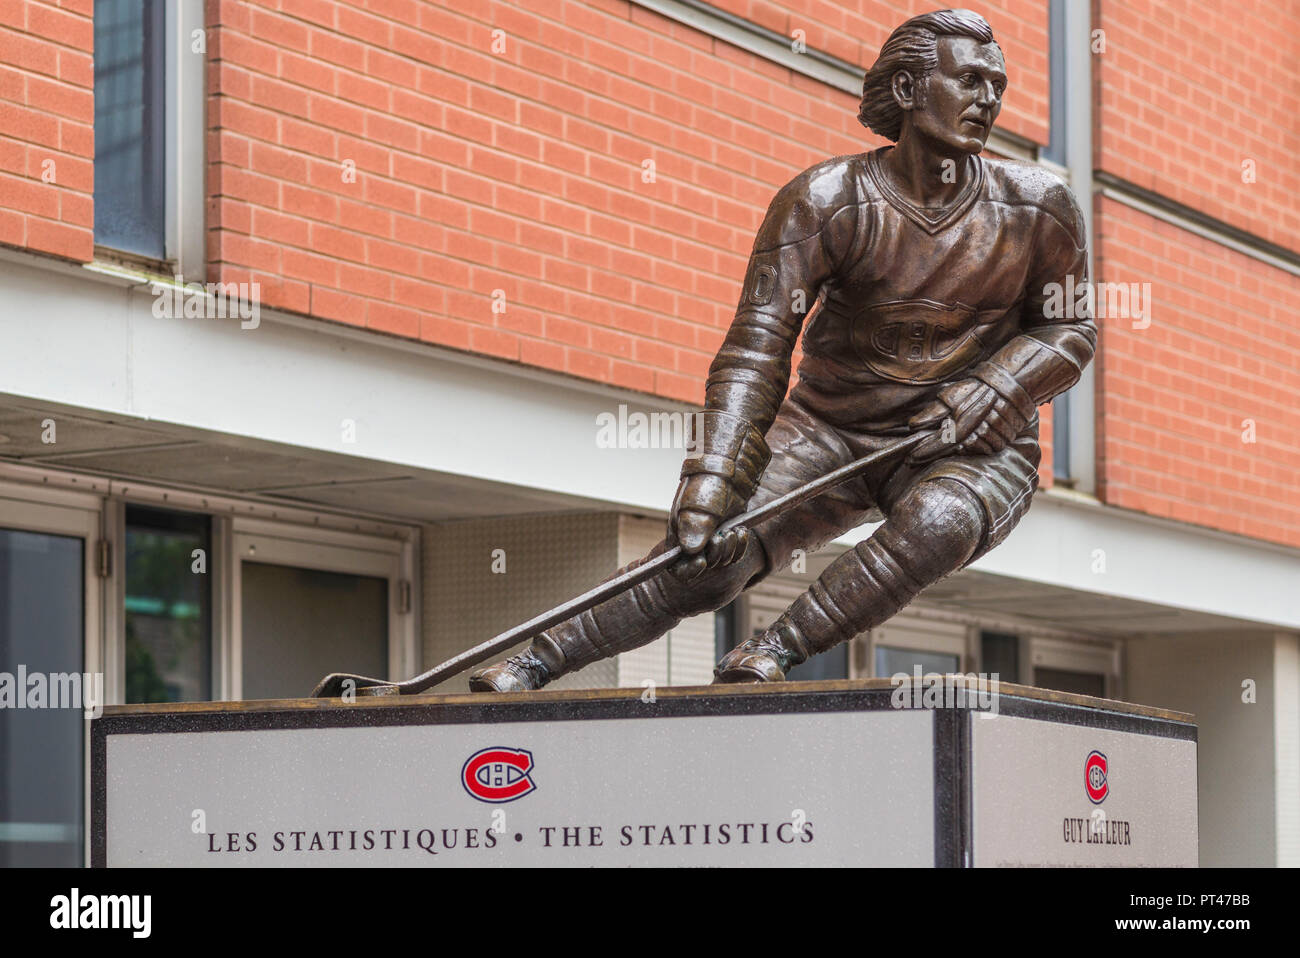 Canada, Quebec, Montreal, Bell Centre, arena of the Montreal Canadiens Hockey Team, statue of hockey legend Guy LaFleur - Stock Image